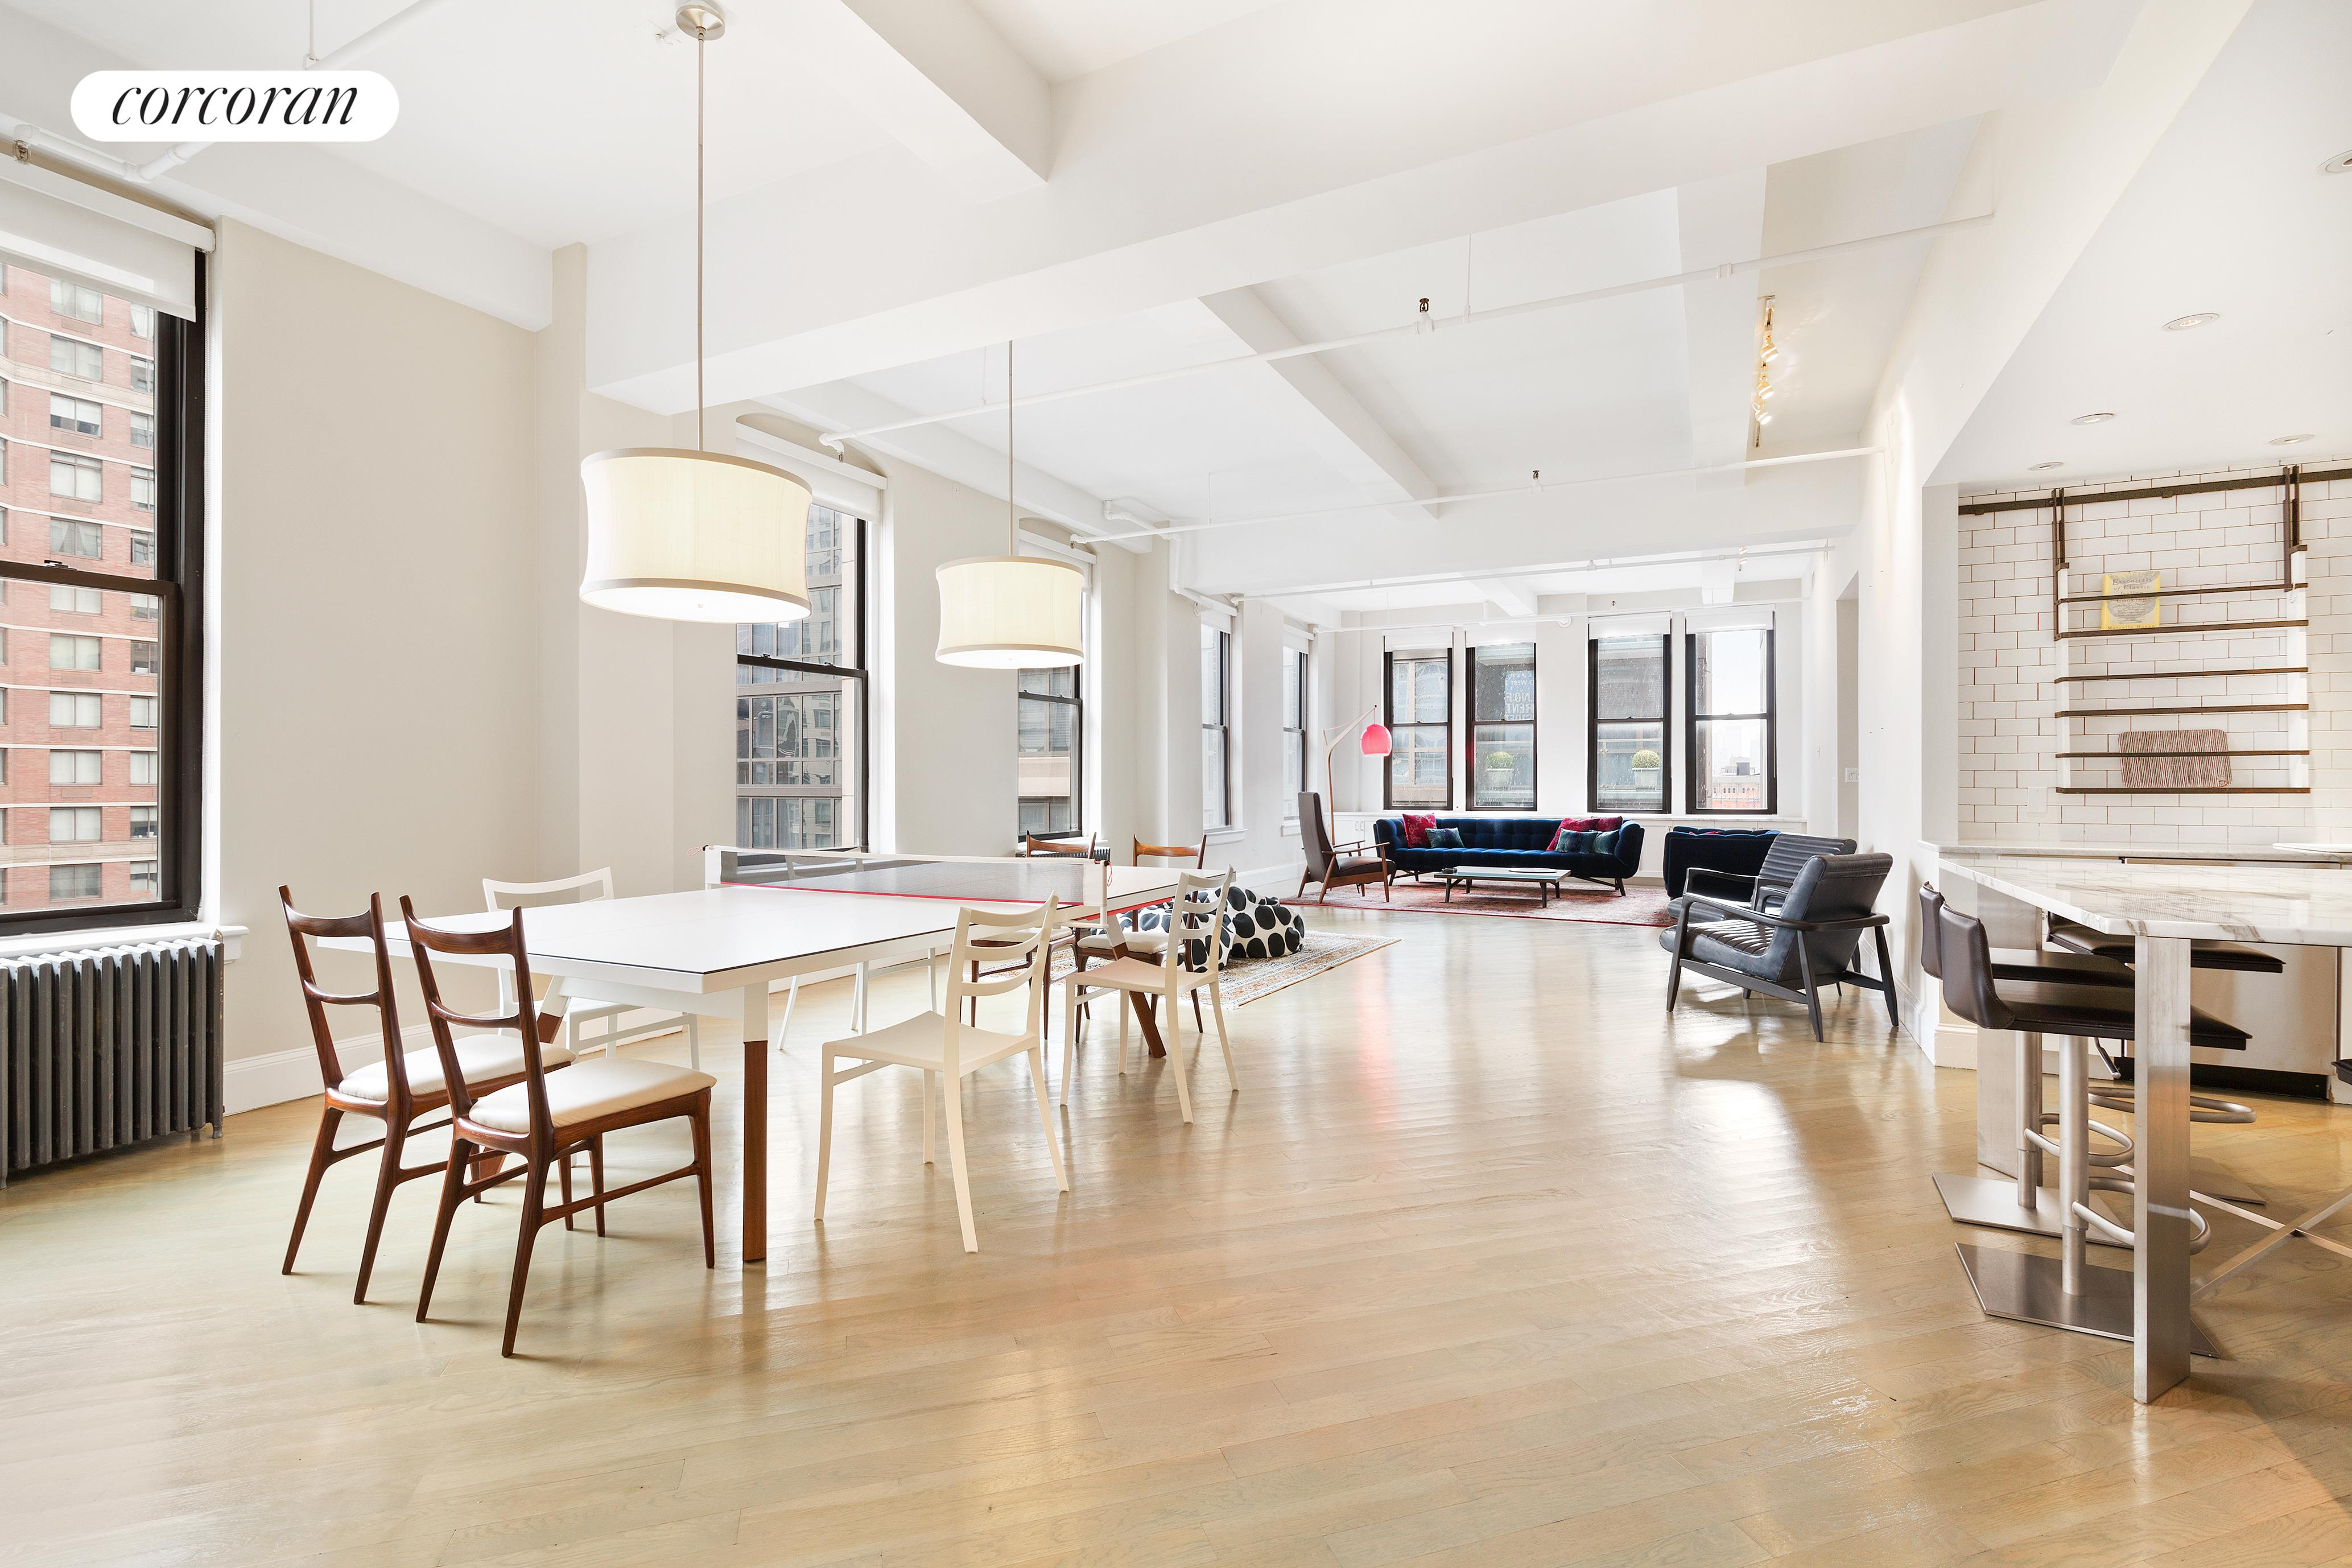 110 West 25th Street, 11 FL, Living Room